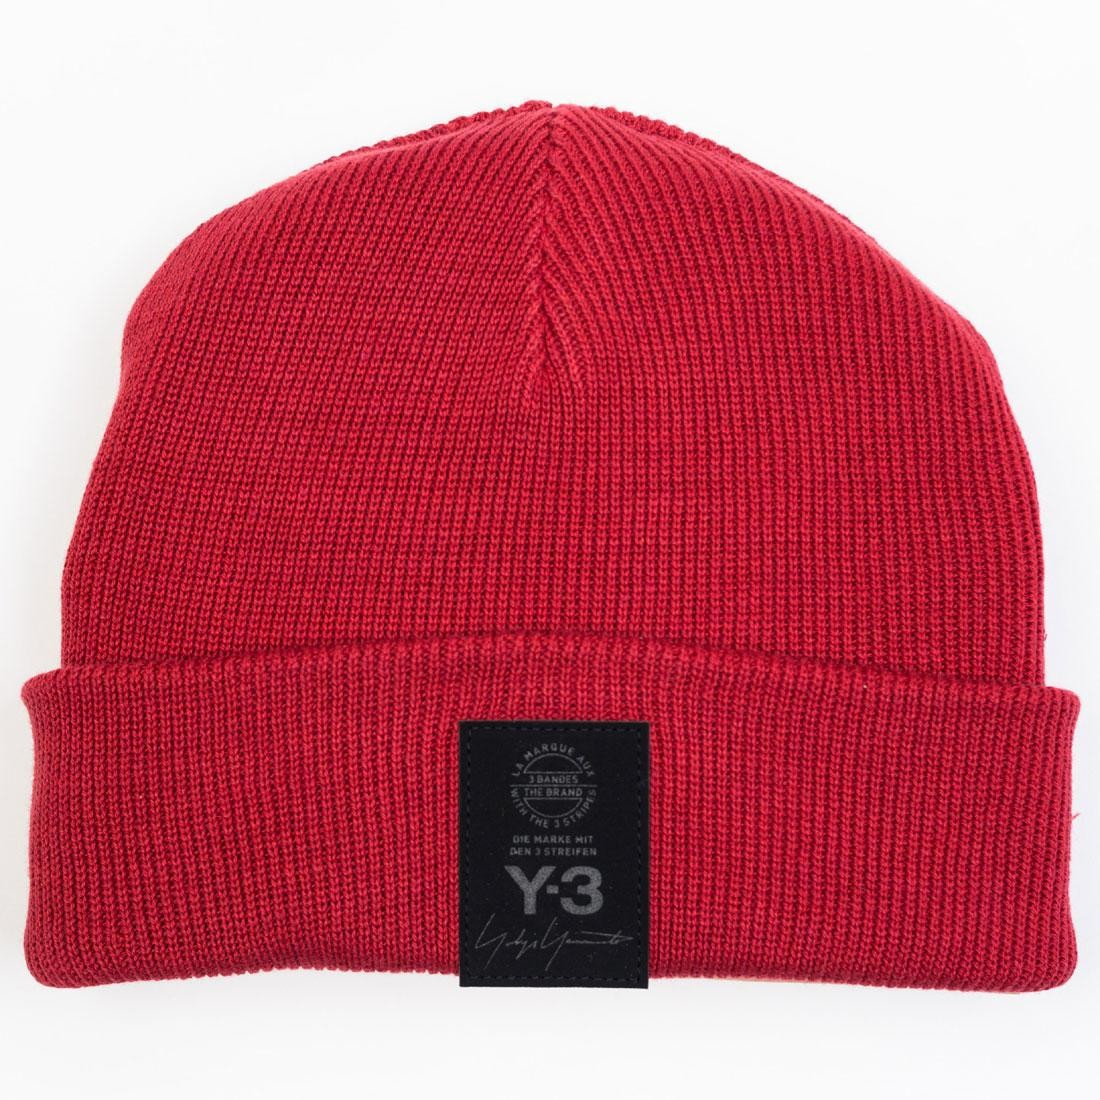 Adidas Y-3 Logo Beanie (red / chili pepper)